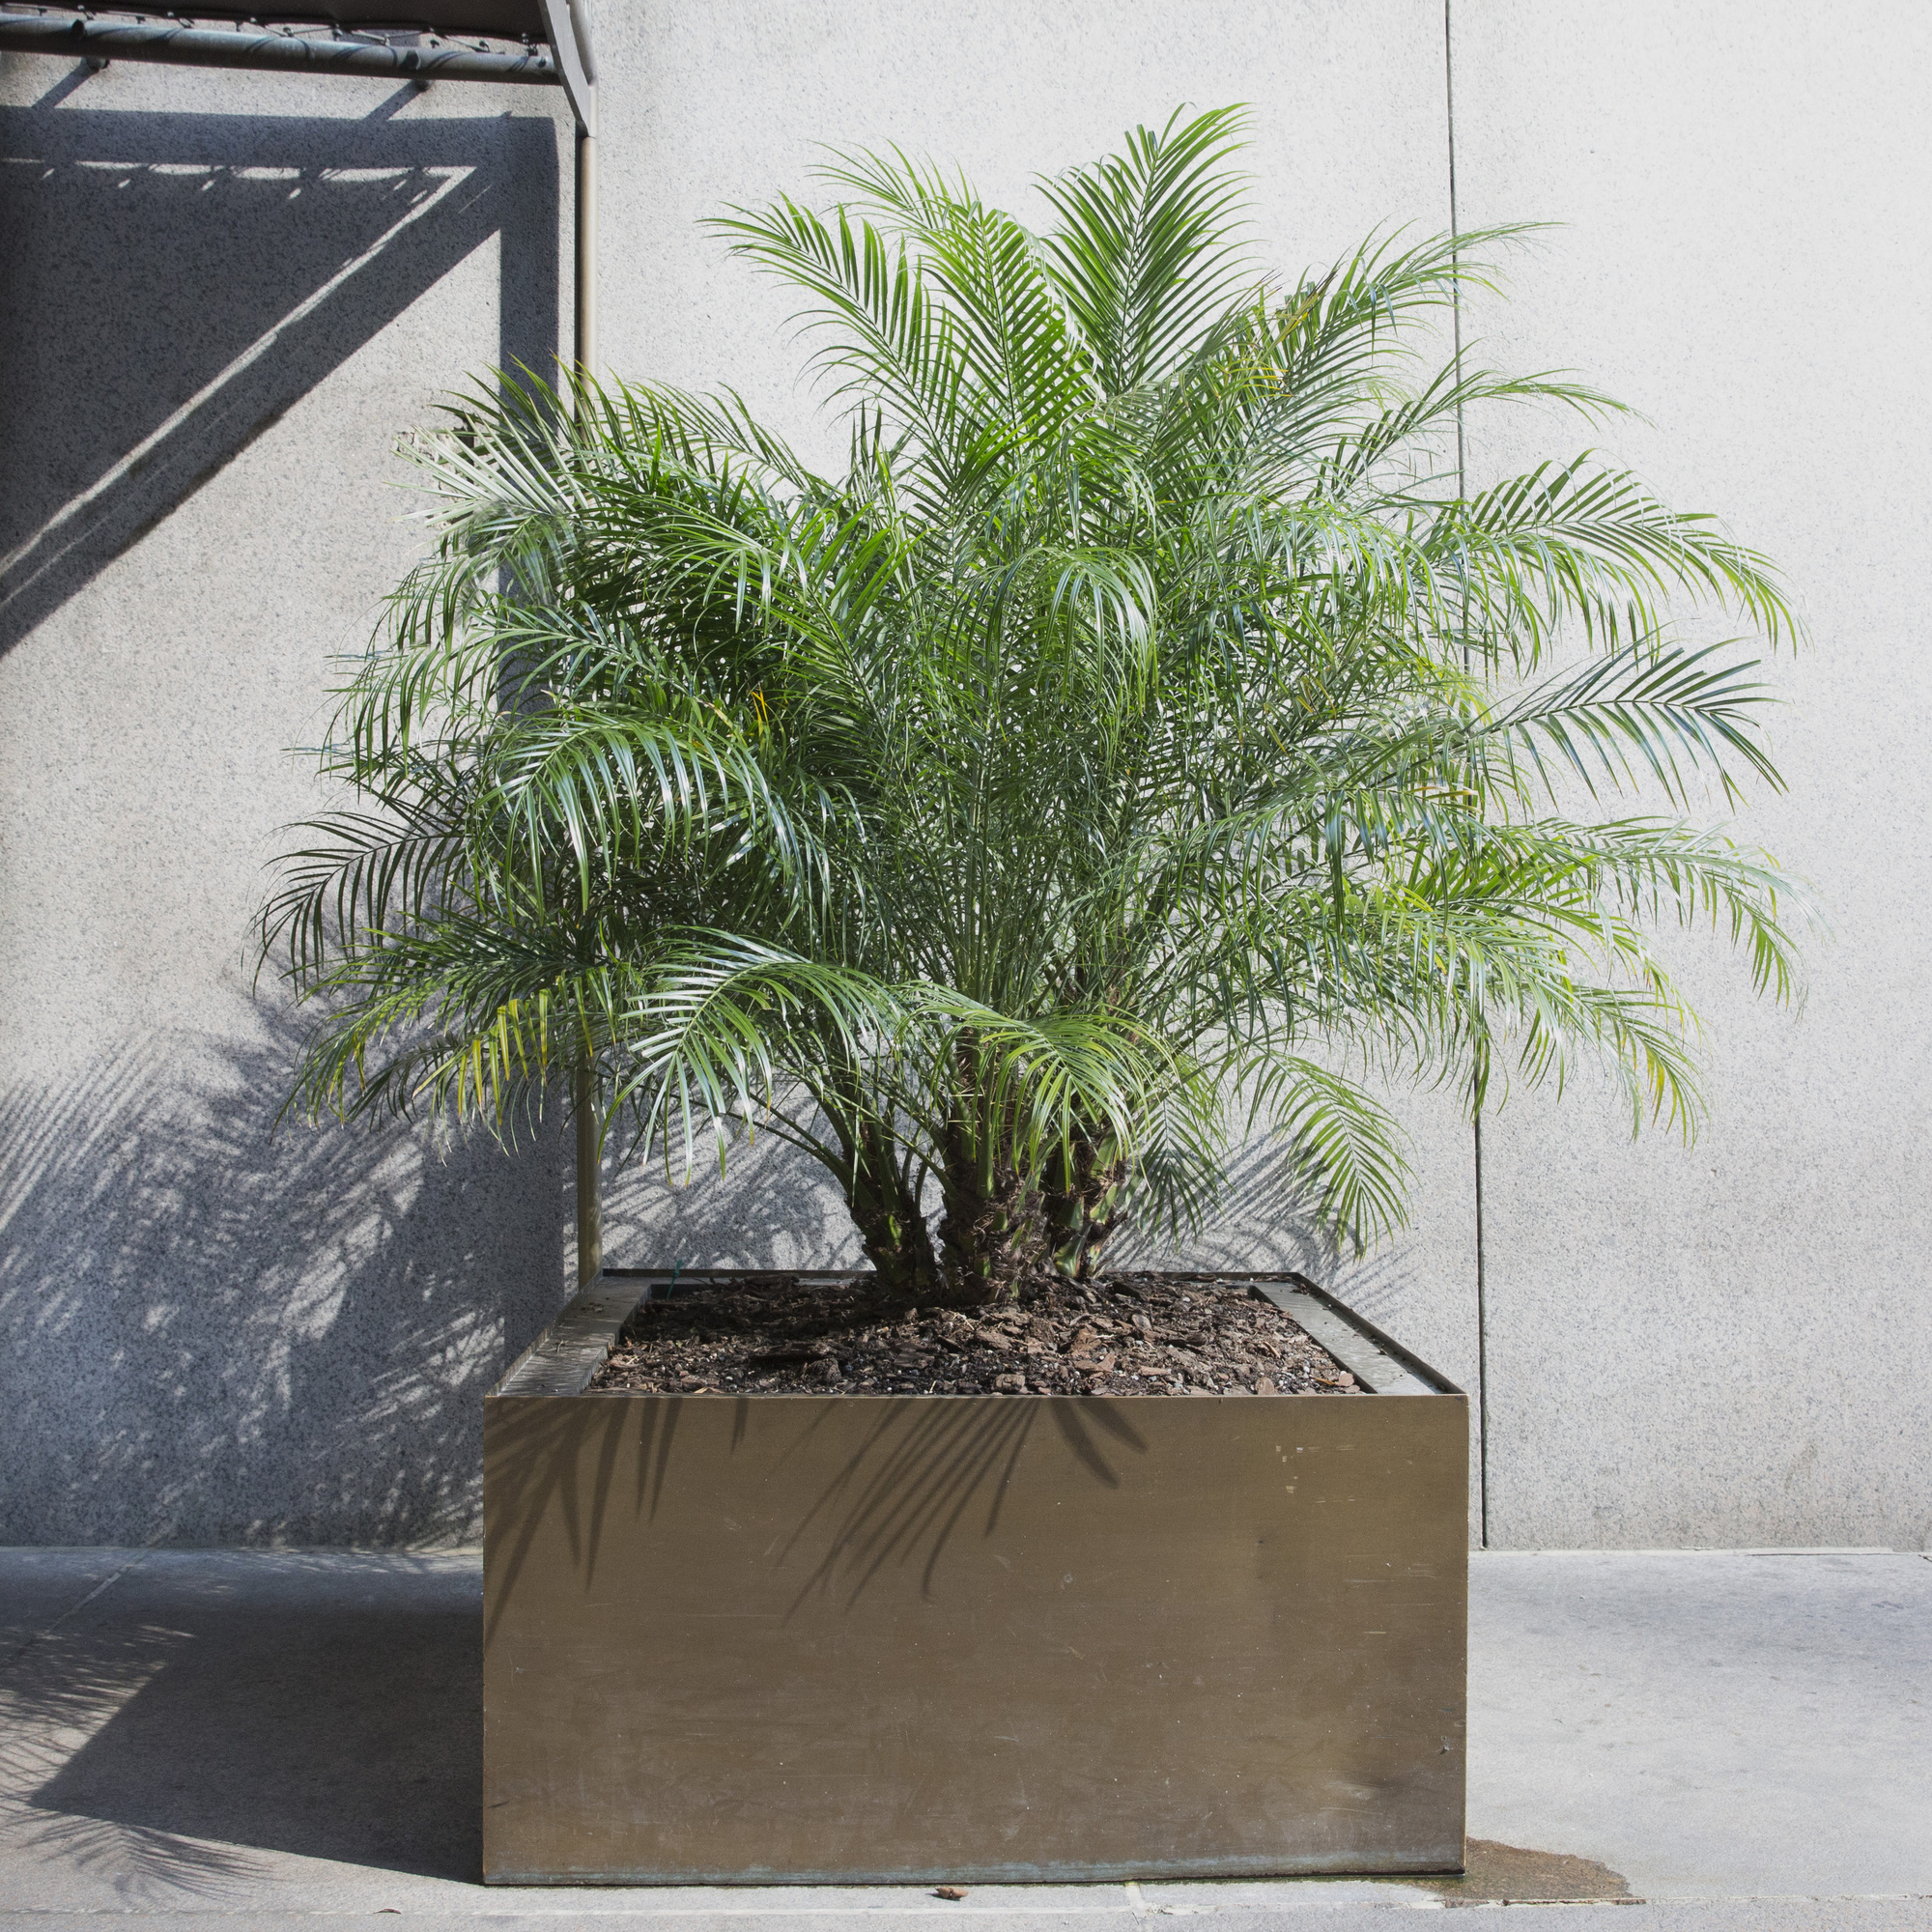 161:  / Planter from the entrance of The Four Seasons (1 of 1)